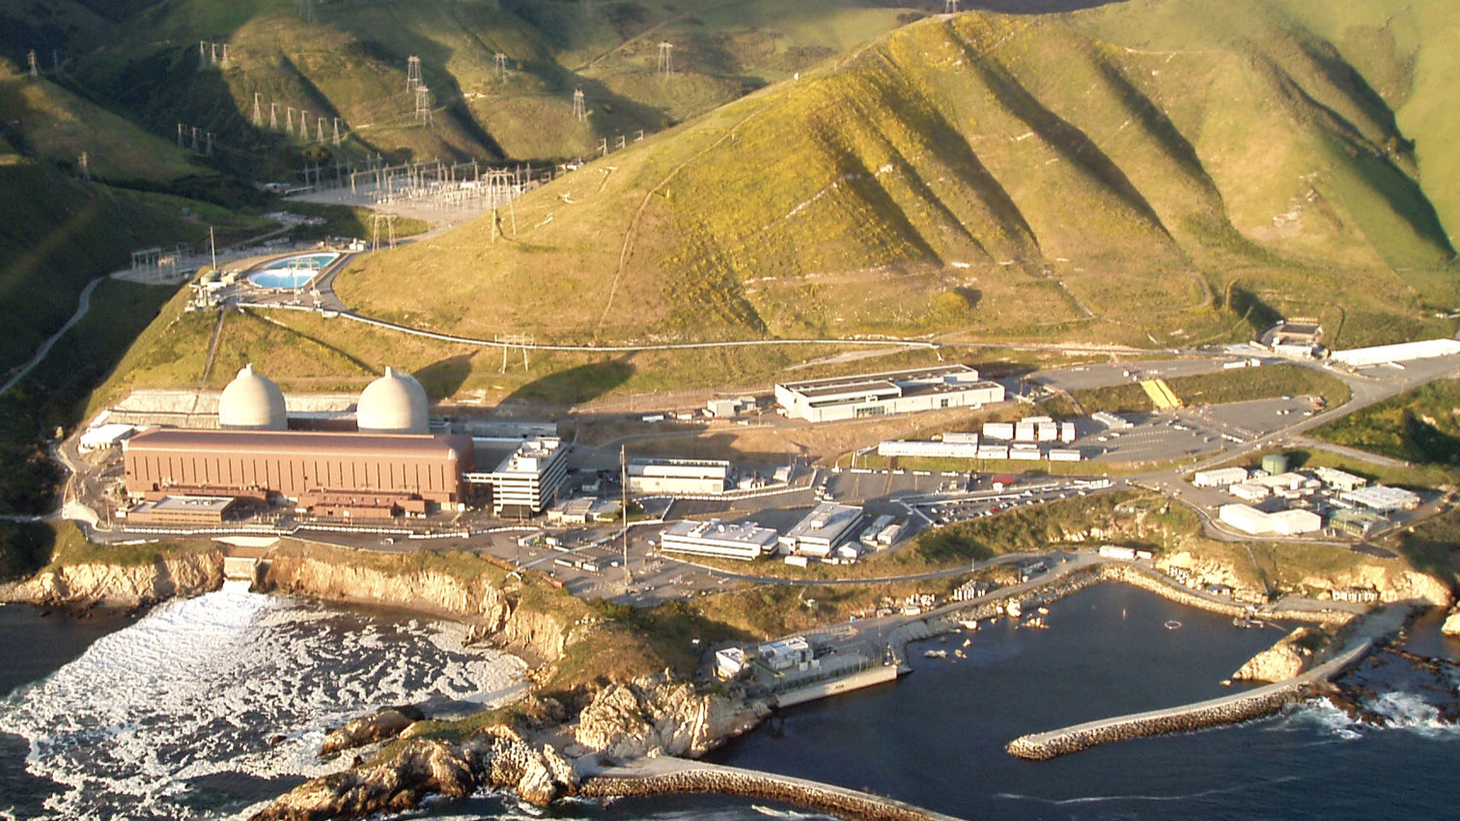 Diablo Canyon relies on PG&E's electrical power grid in order to operate safely.